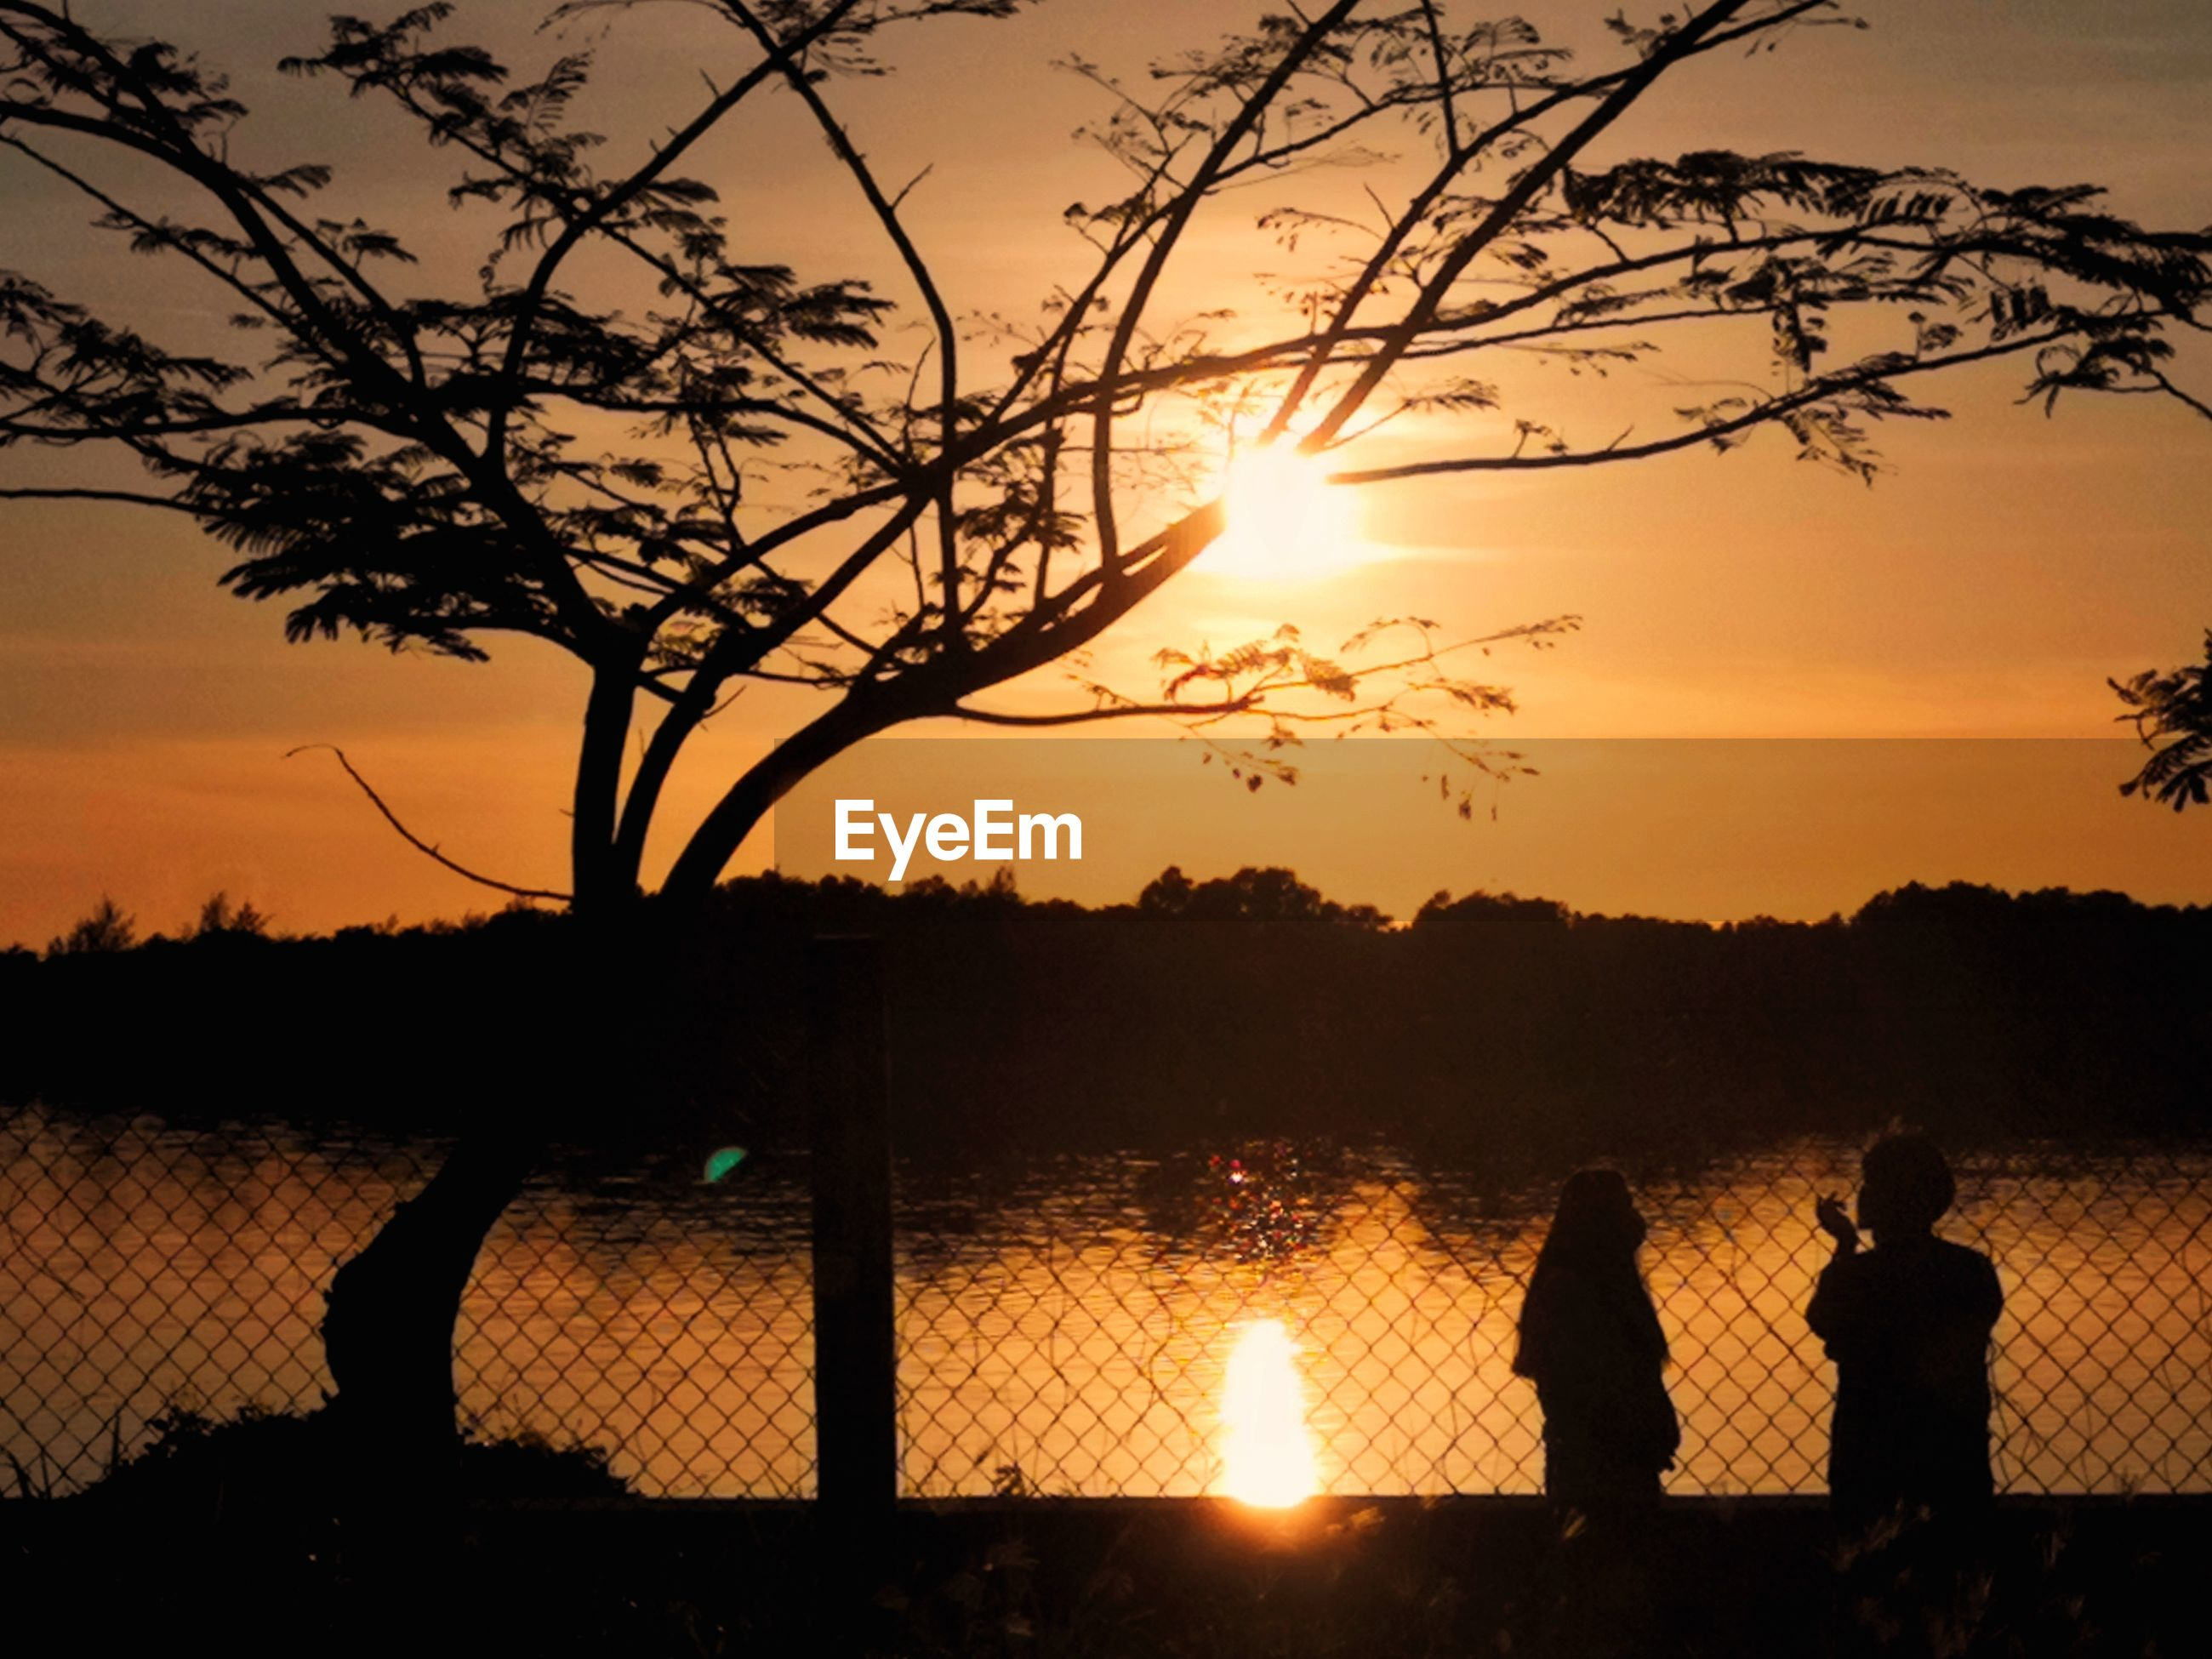 SILHOUETTE MEN BY LAKE AGAINST SKY DURING SUNSET